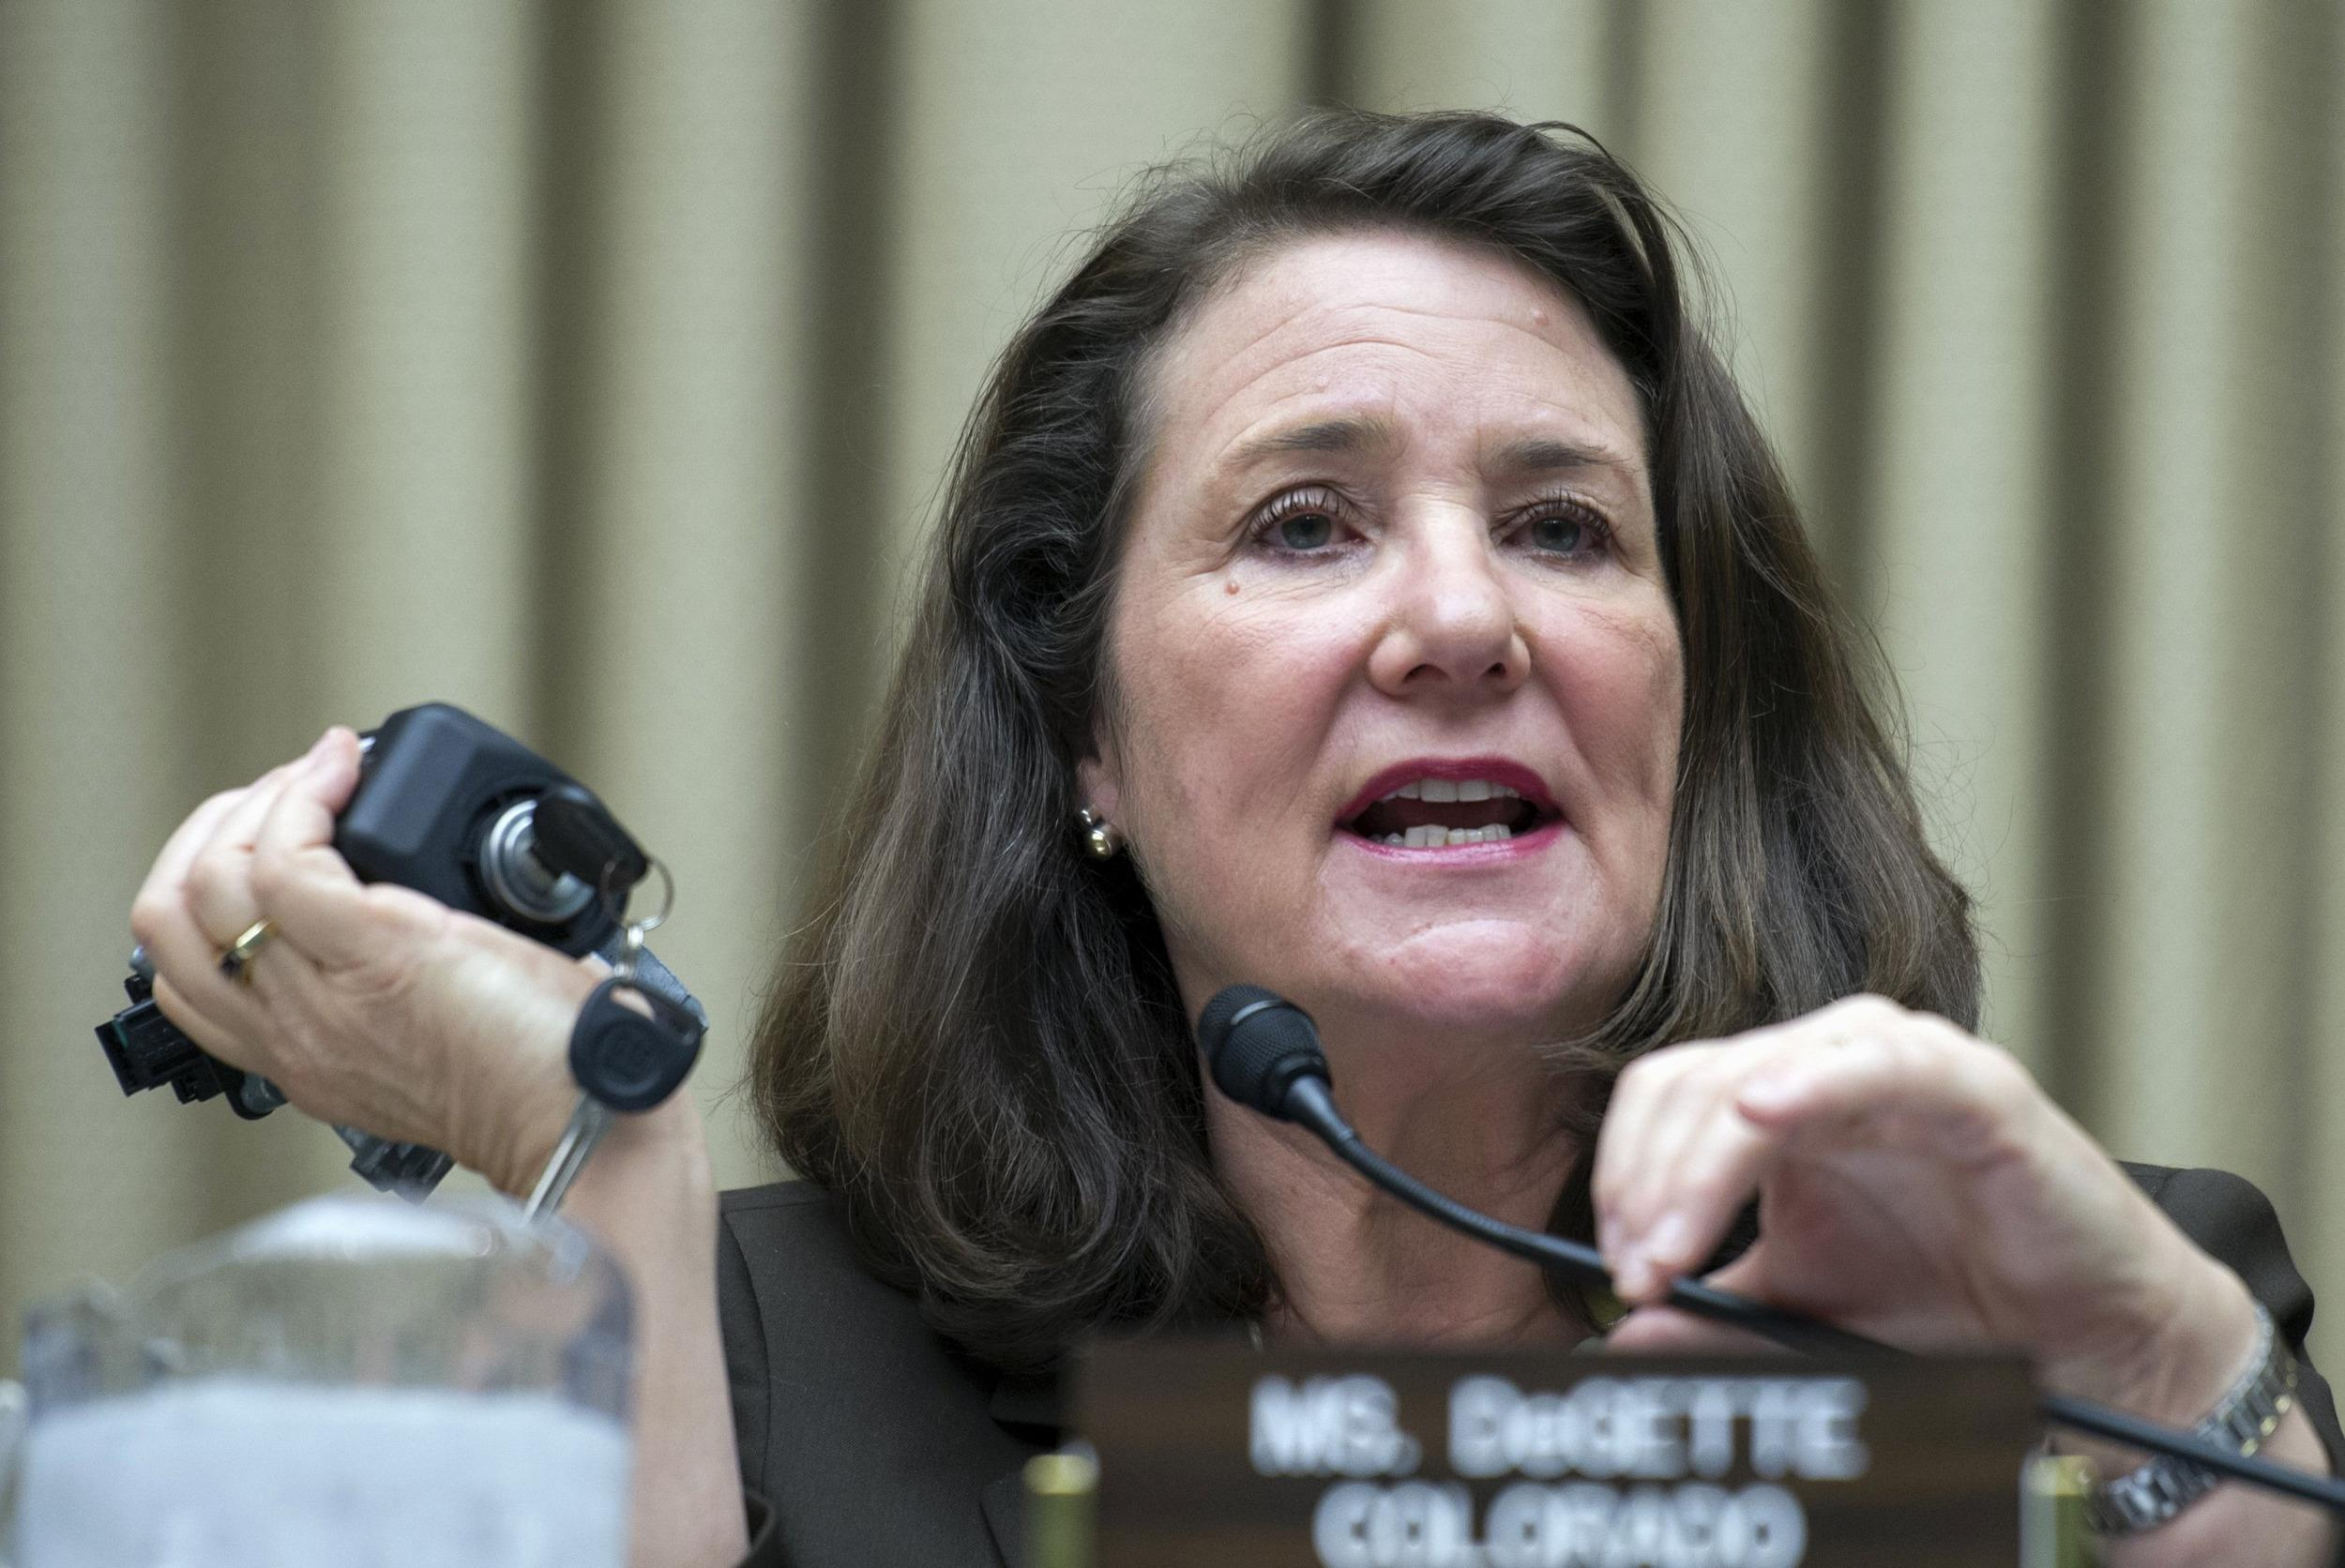 Rep. Diana DeGette holds an ignition switch unit at a House committee hearing into General Motors' recalls. GM says a switch linked to the latest recalls was made in China.